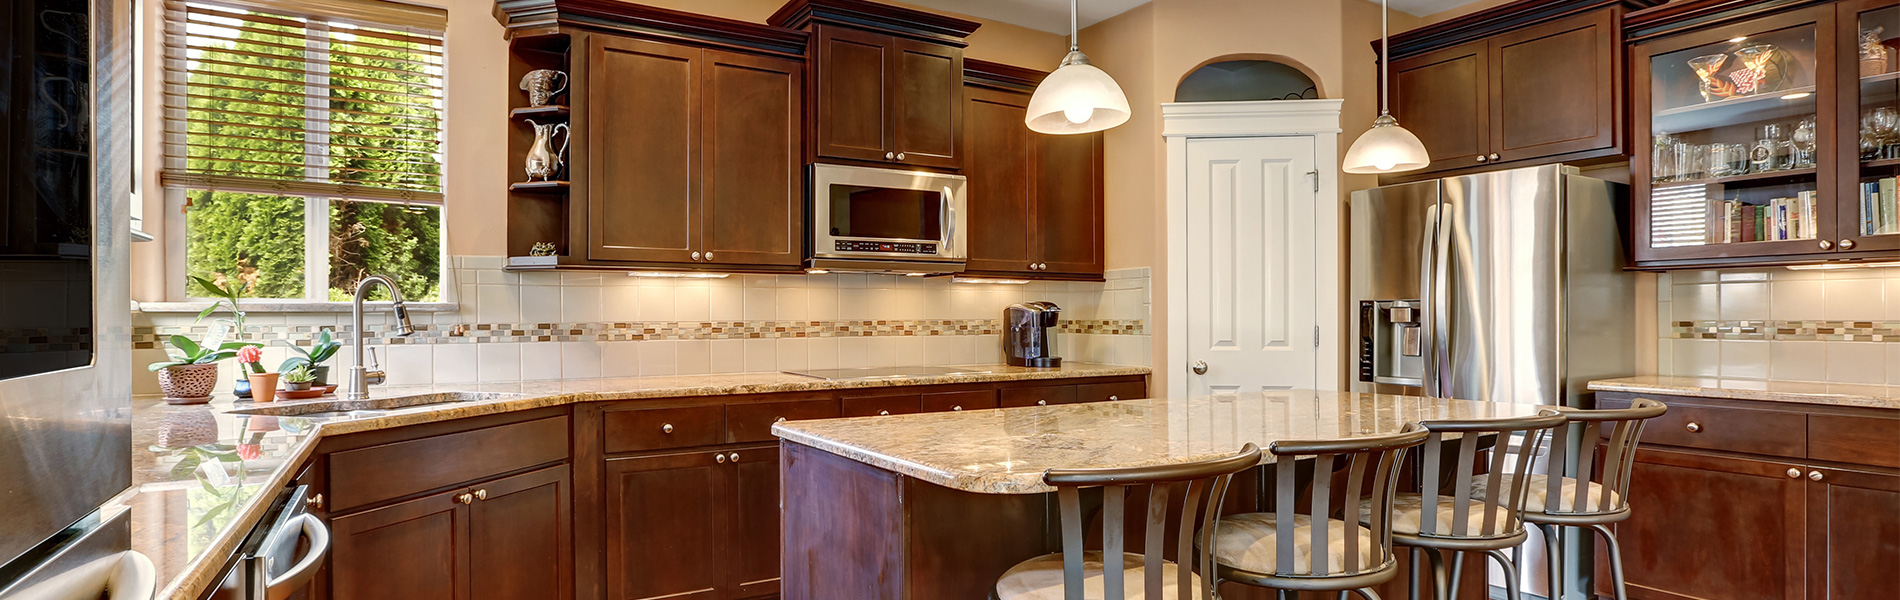 Free Kitchen Design, With Quote!